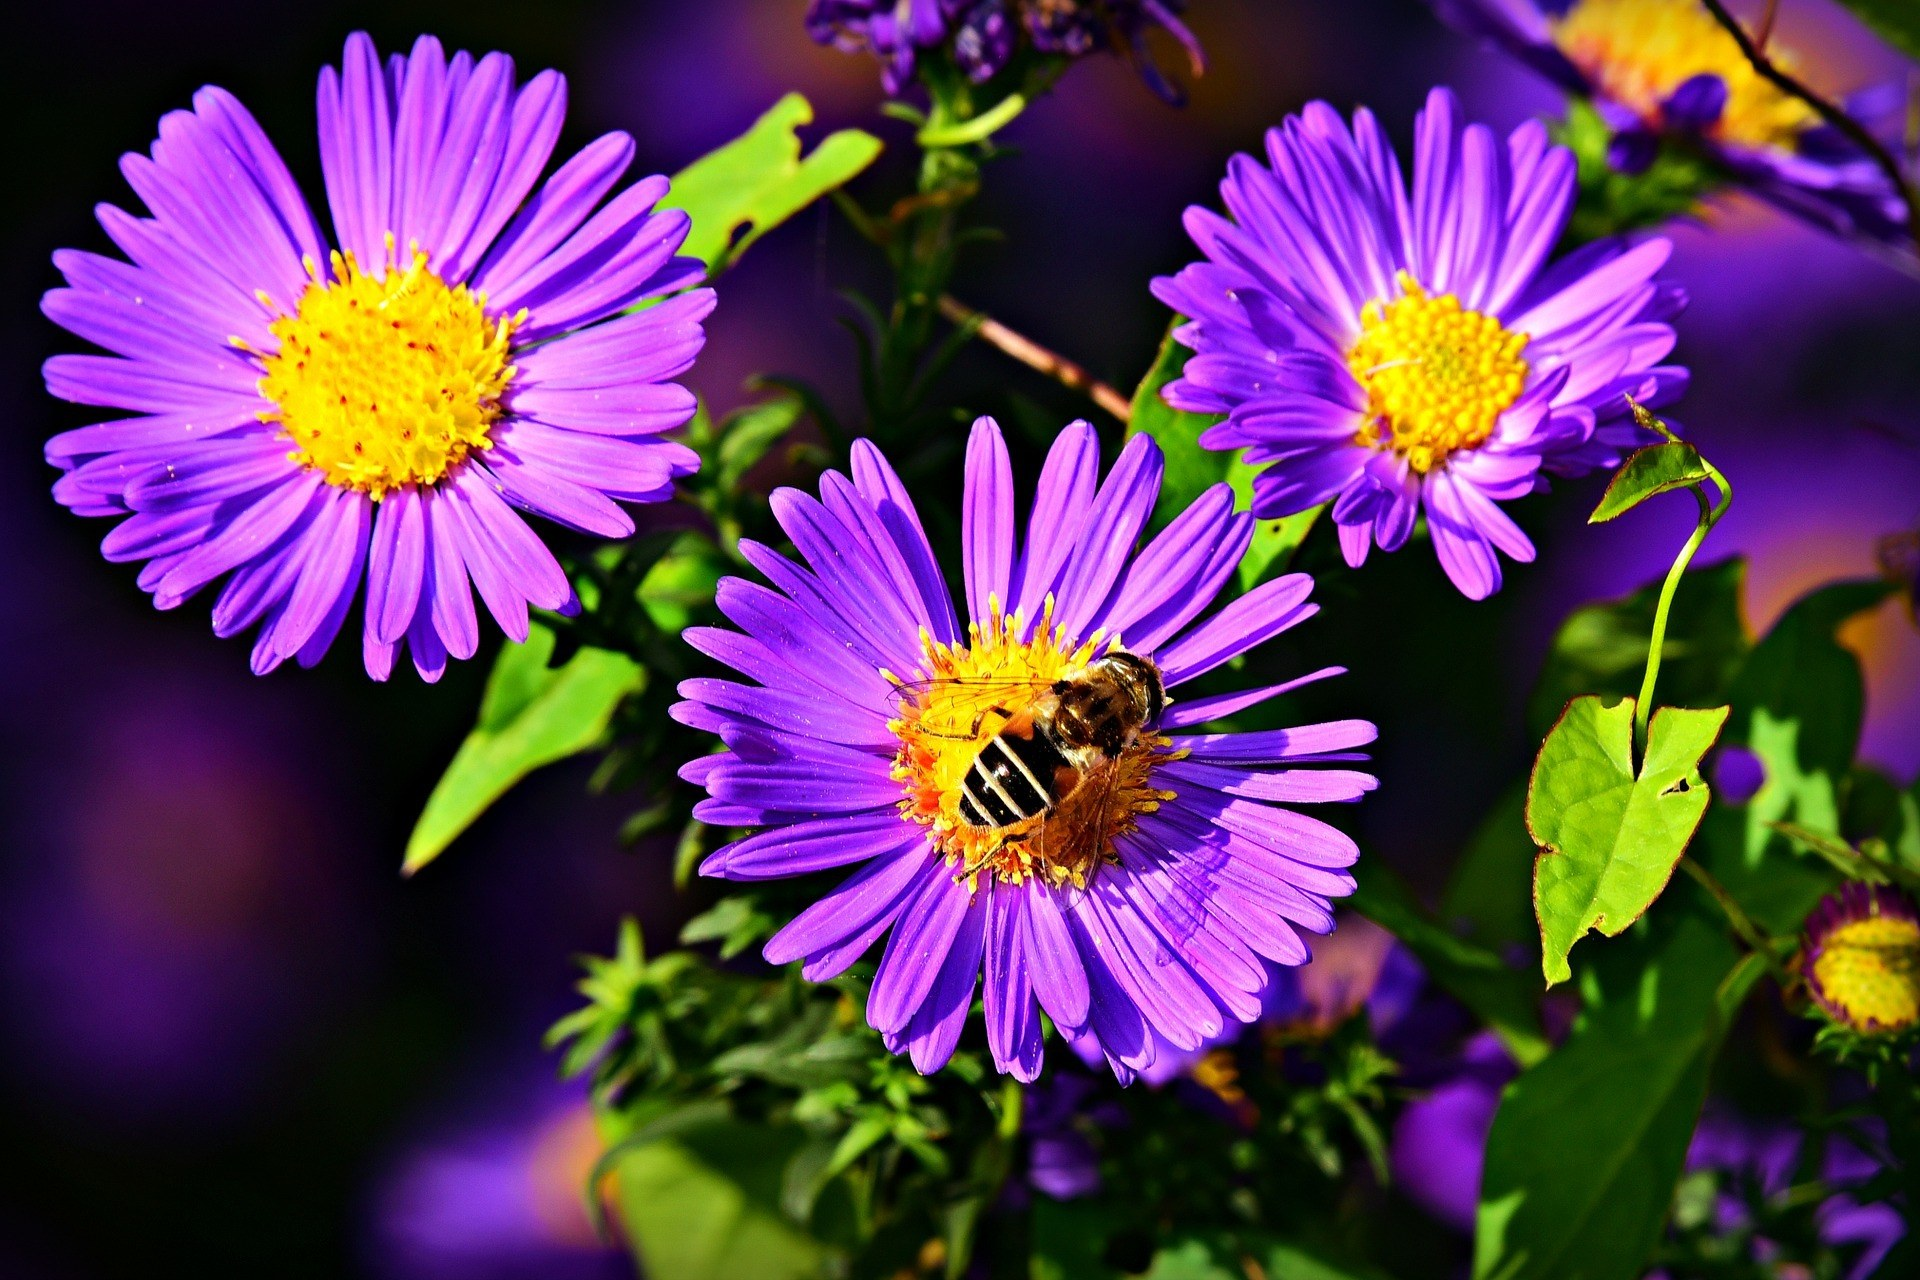 Close view pf the aster flower with bee